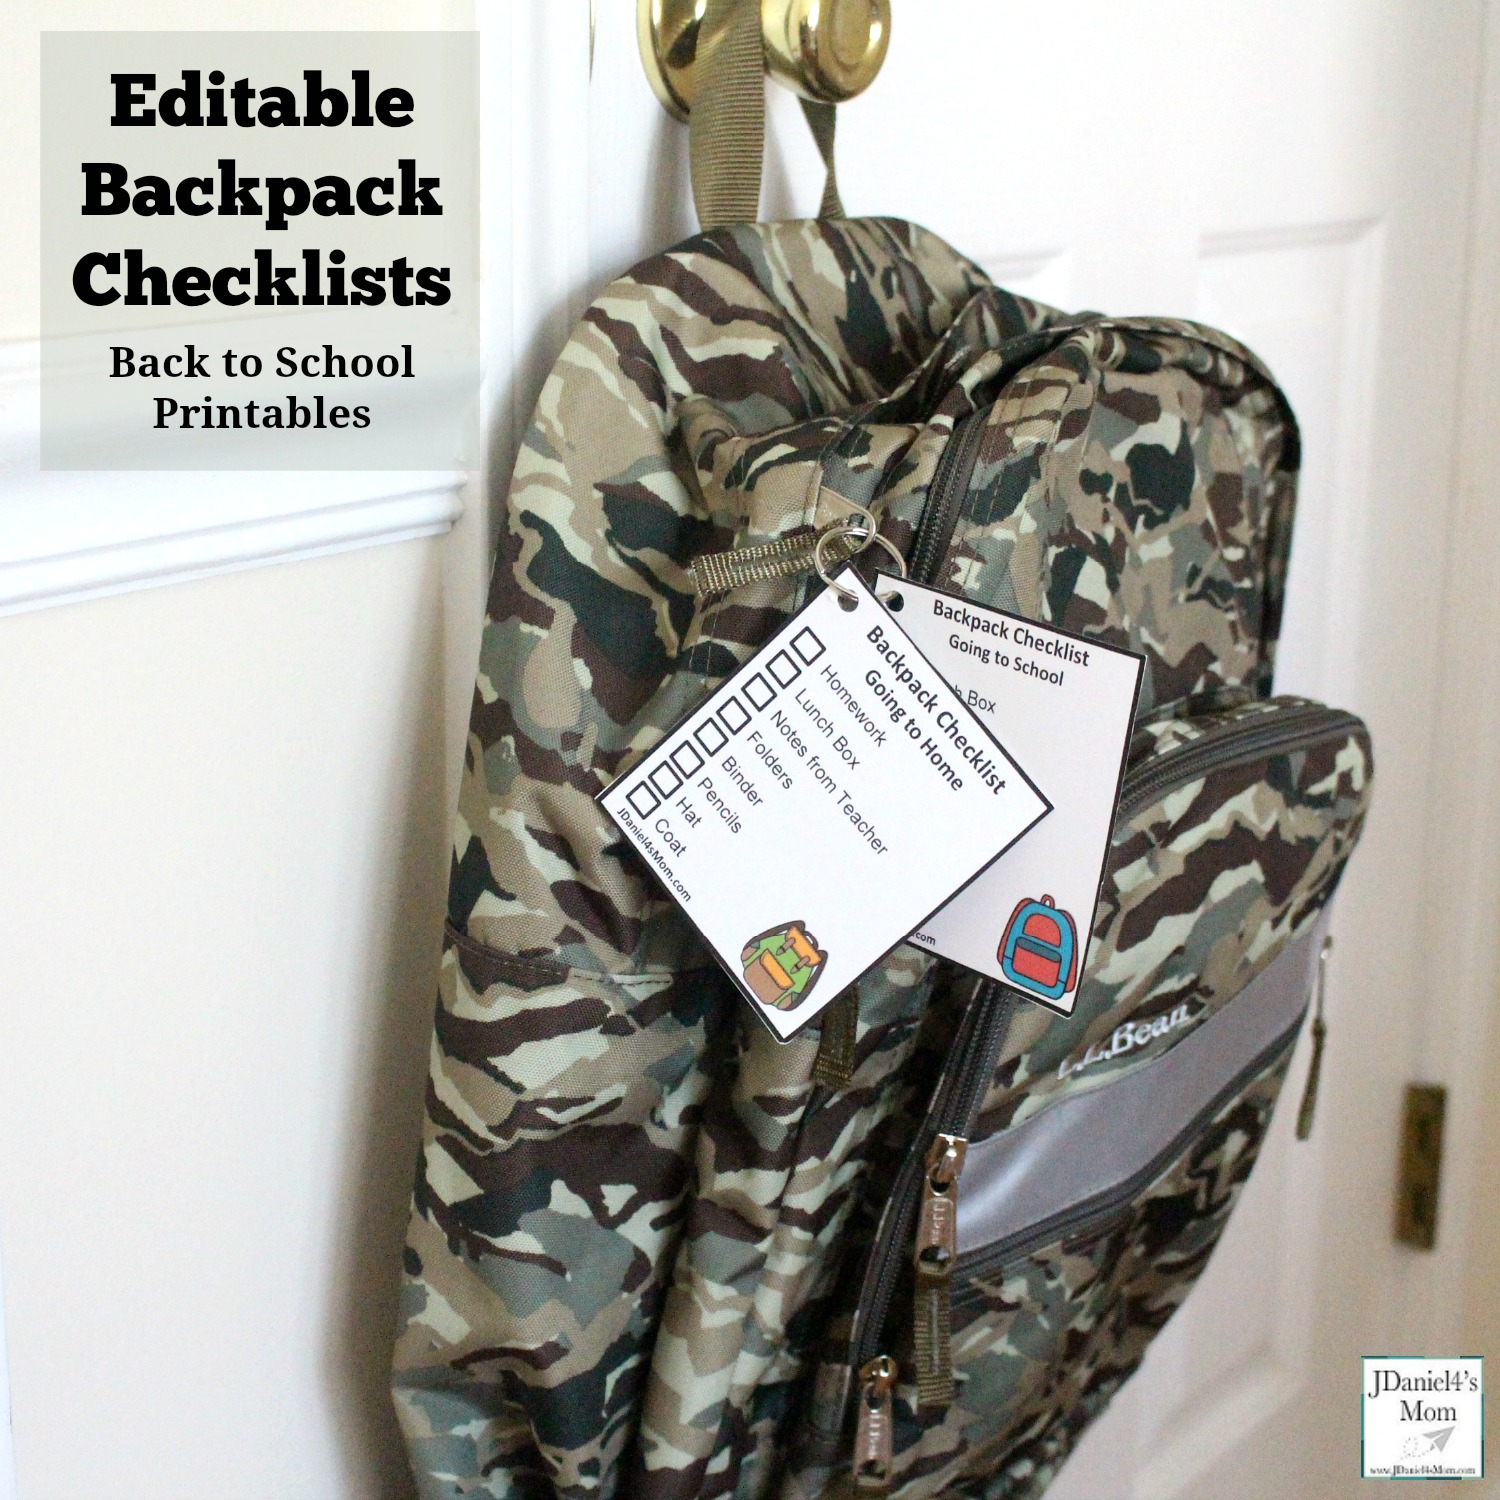 Back To School Printables Editable Backpack Checklists